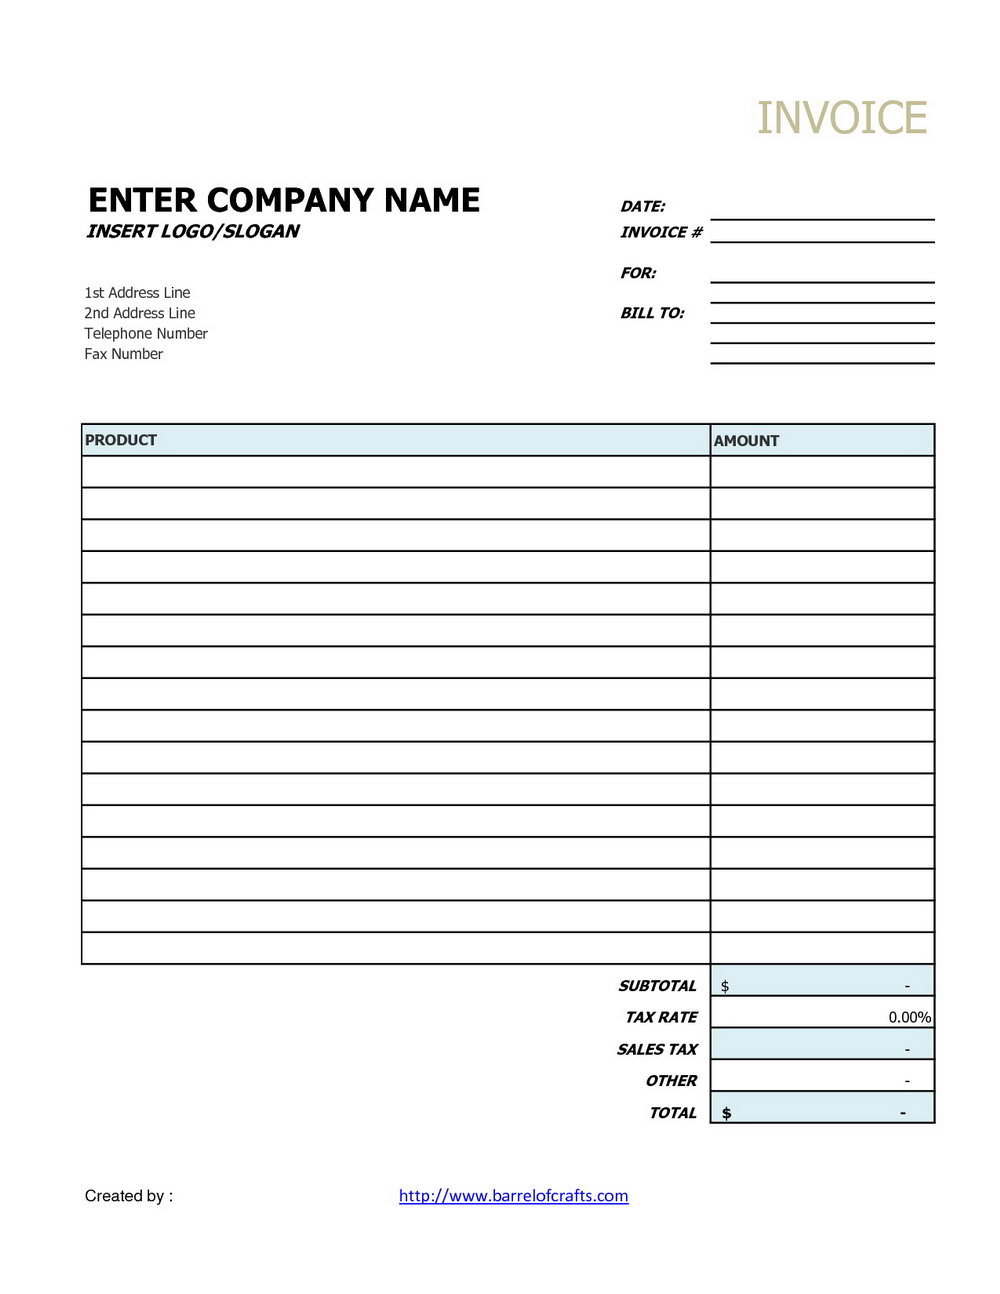 Generic Invoice Template Word